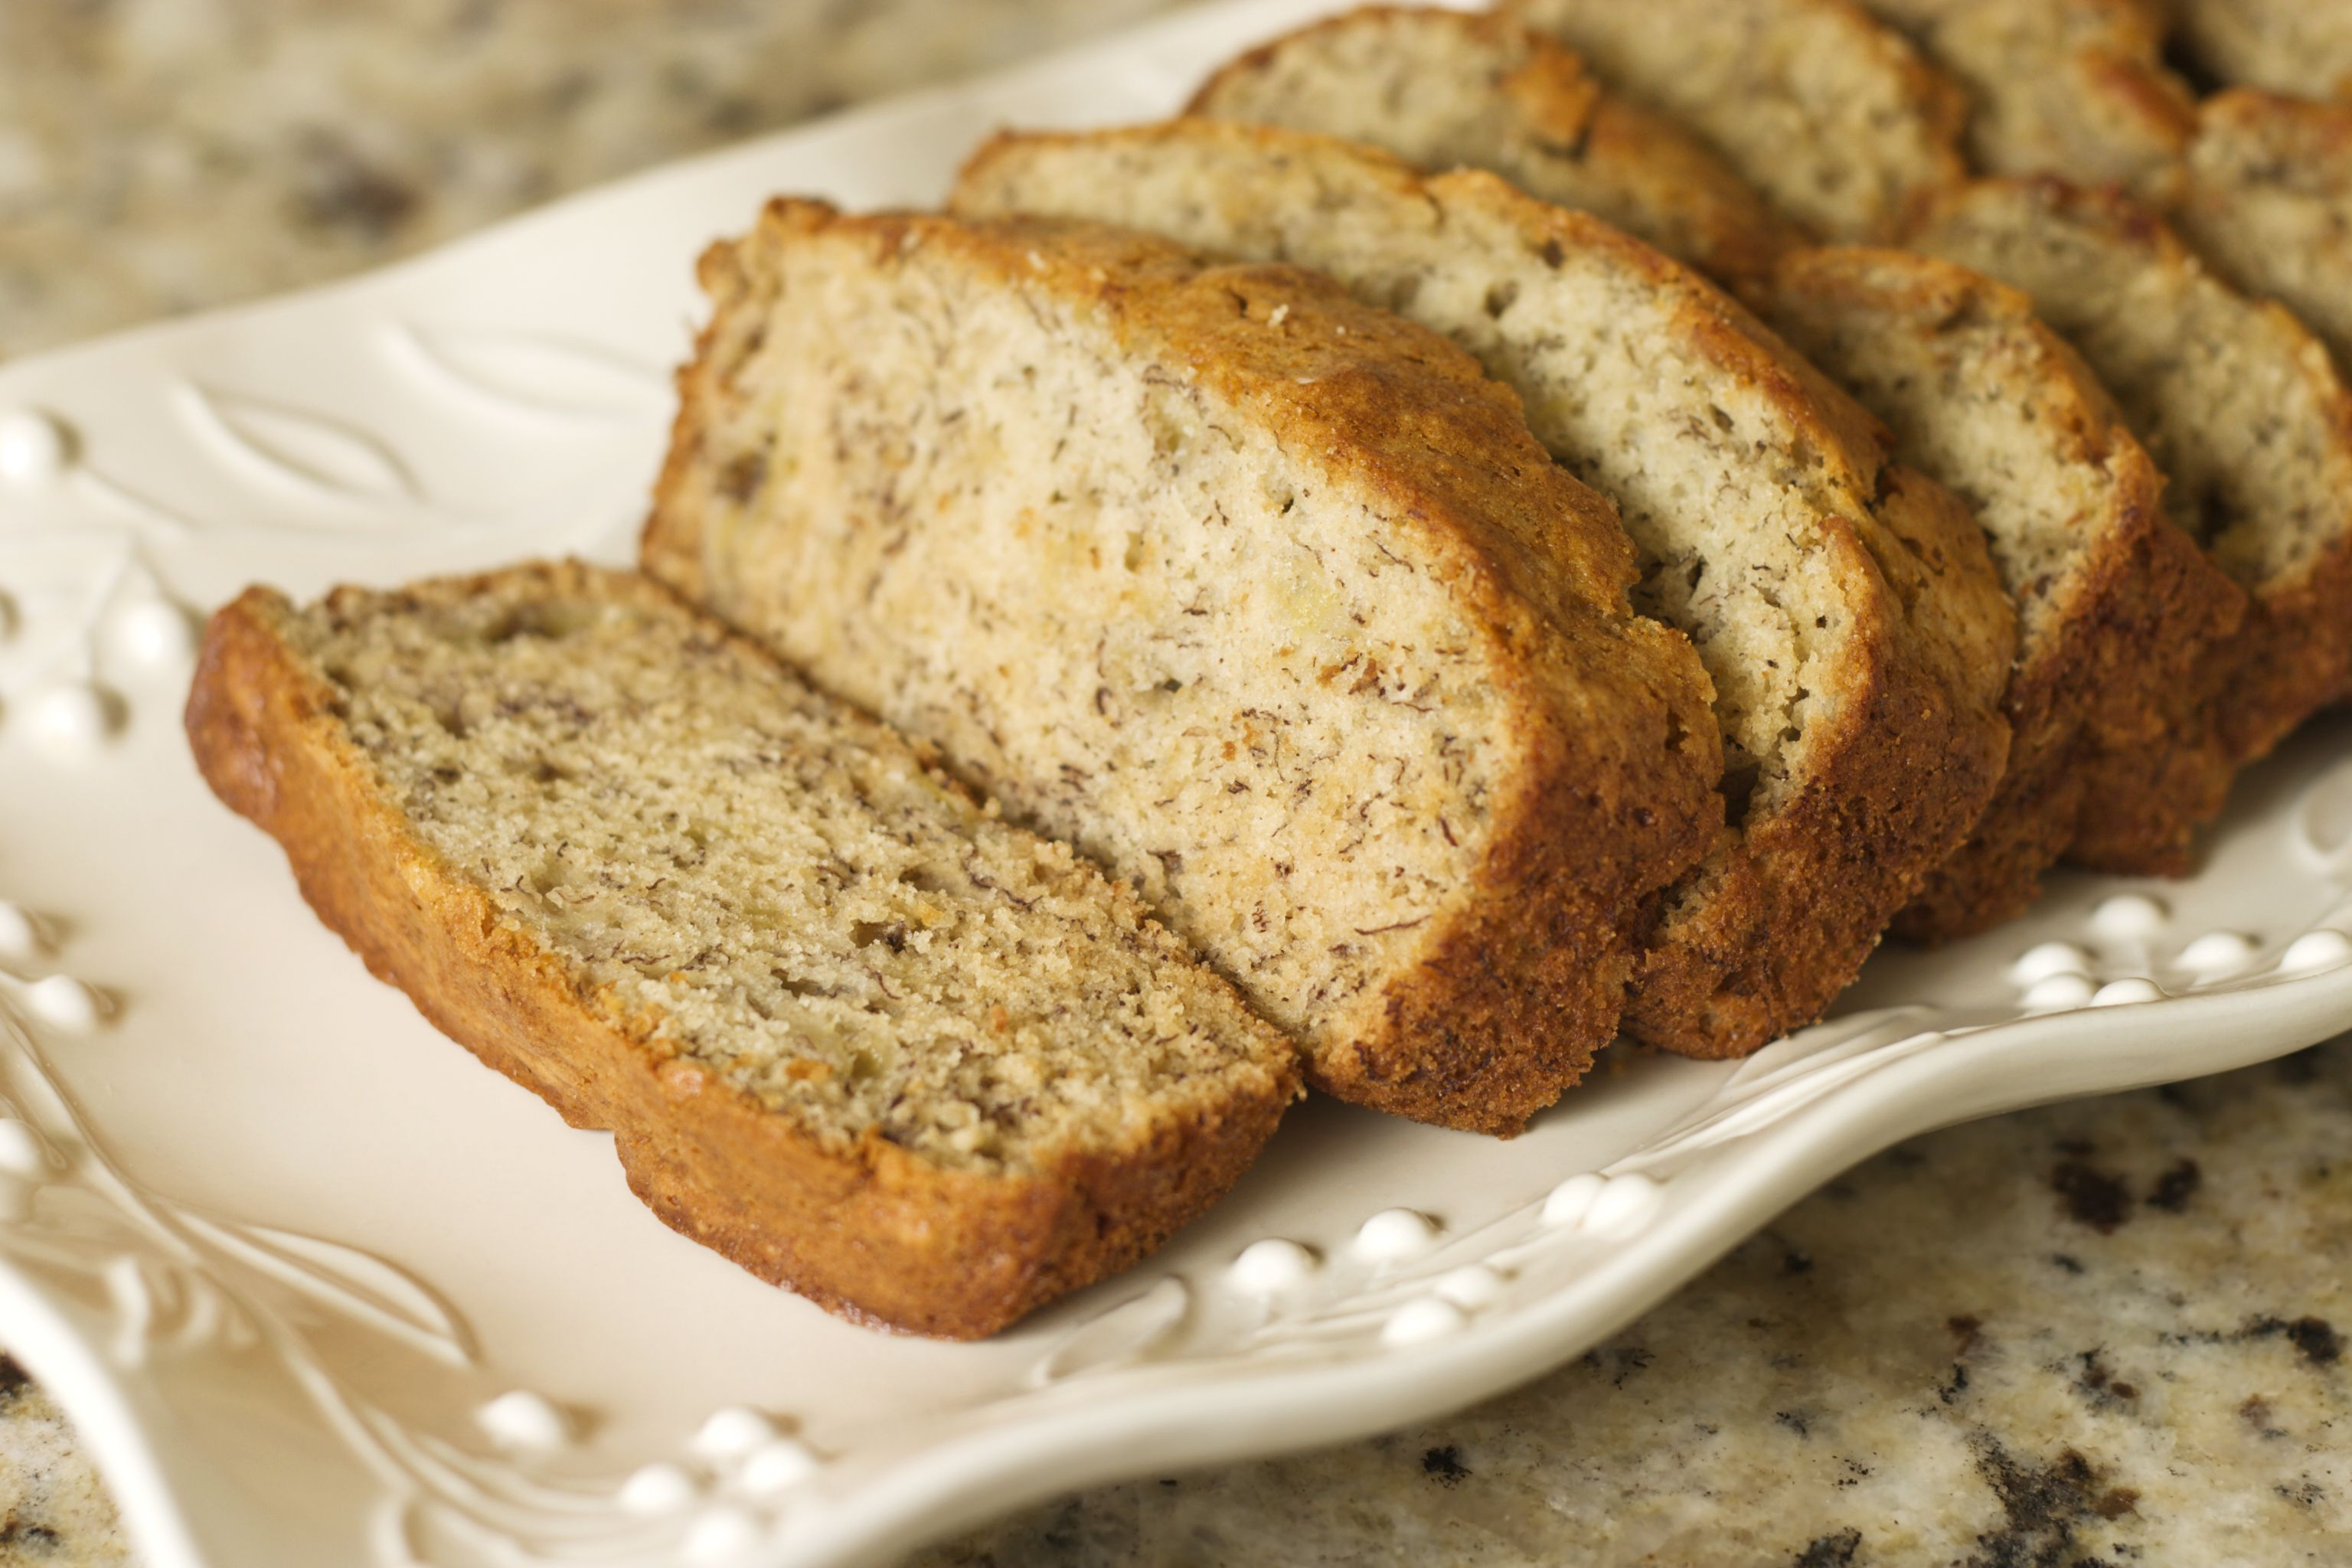 More than just a way to use up bananas, these sweet and savory quick bread recipes are the perfect companion to any brunch or dinner.